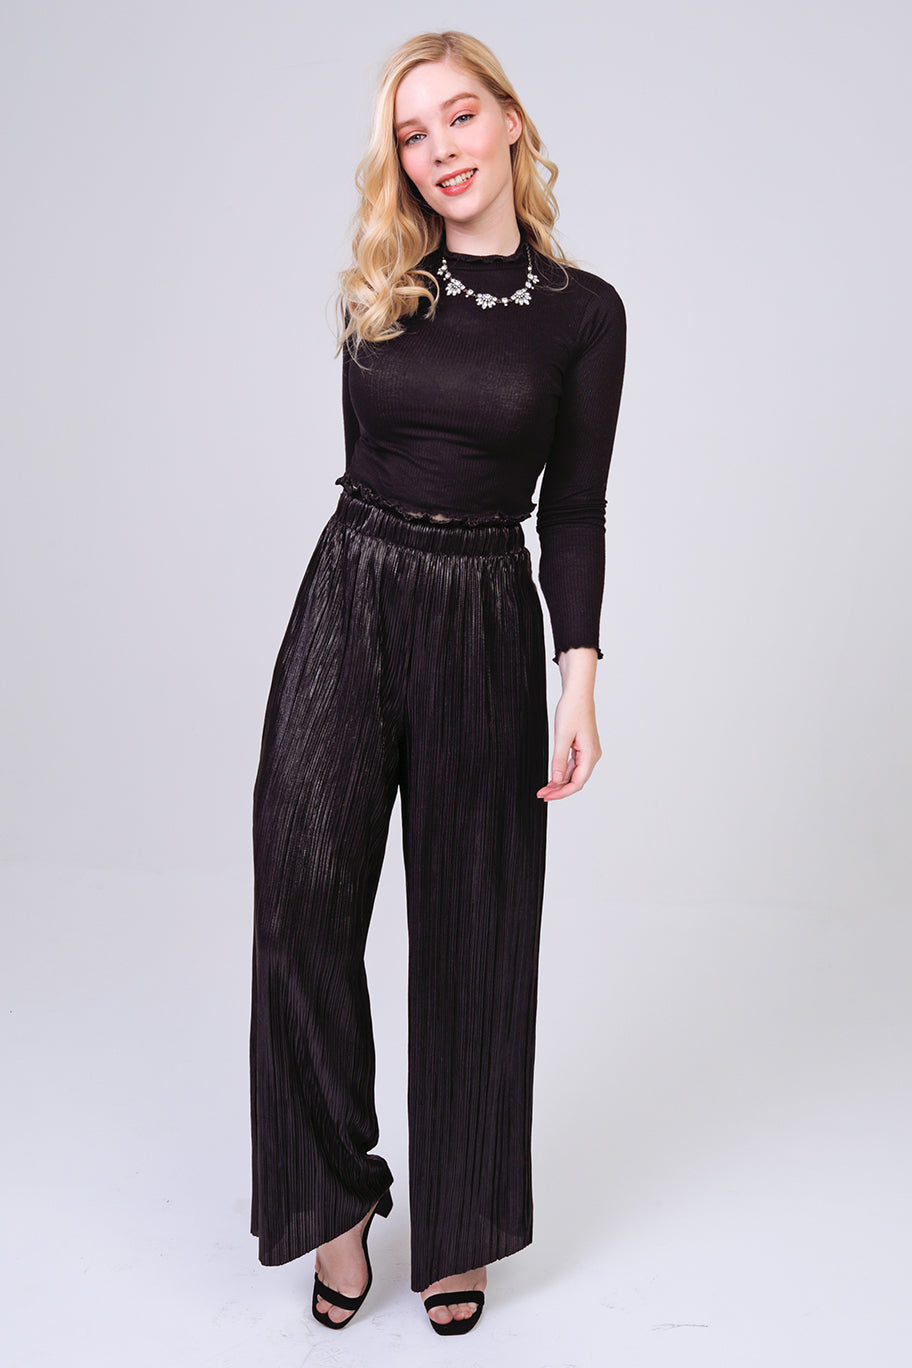 Pleated Paper-Bag Waist Bodre Palazzo Pants in Black/Black